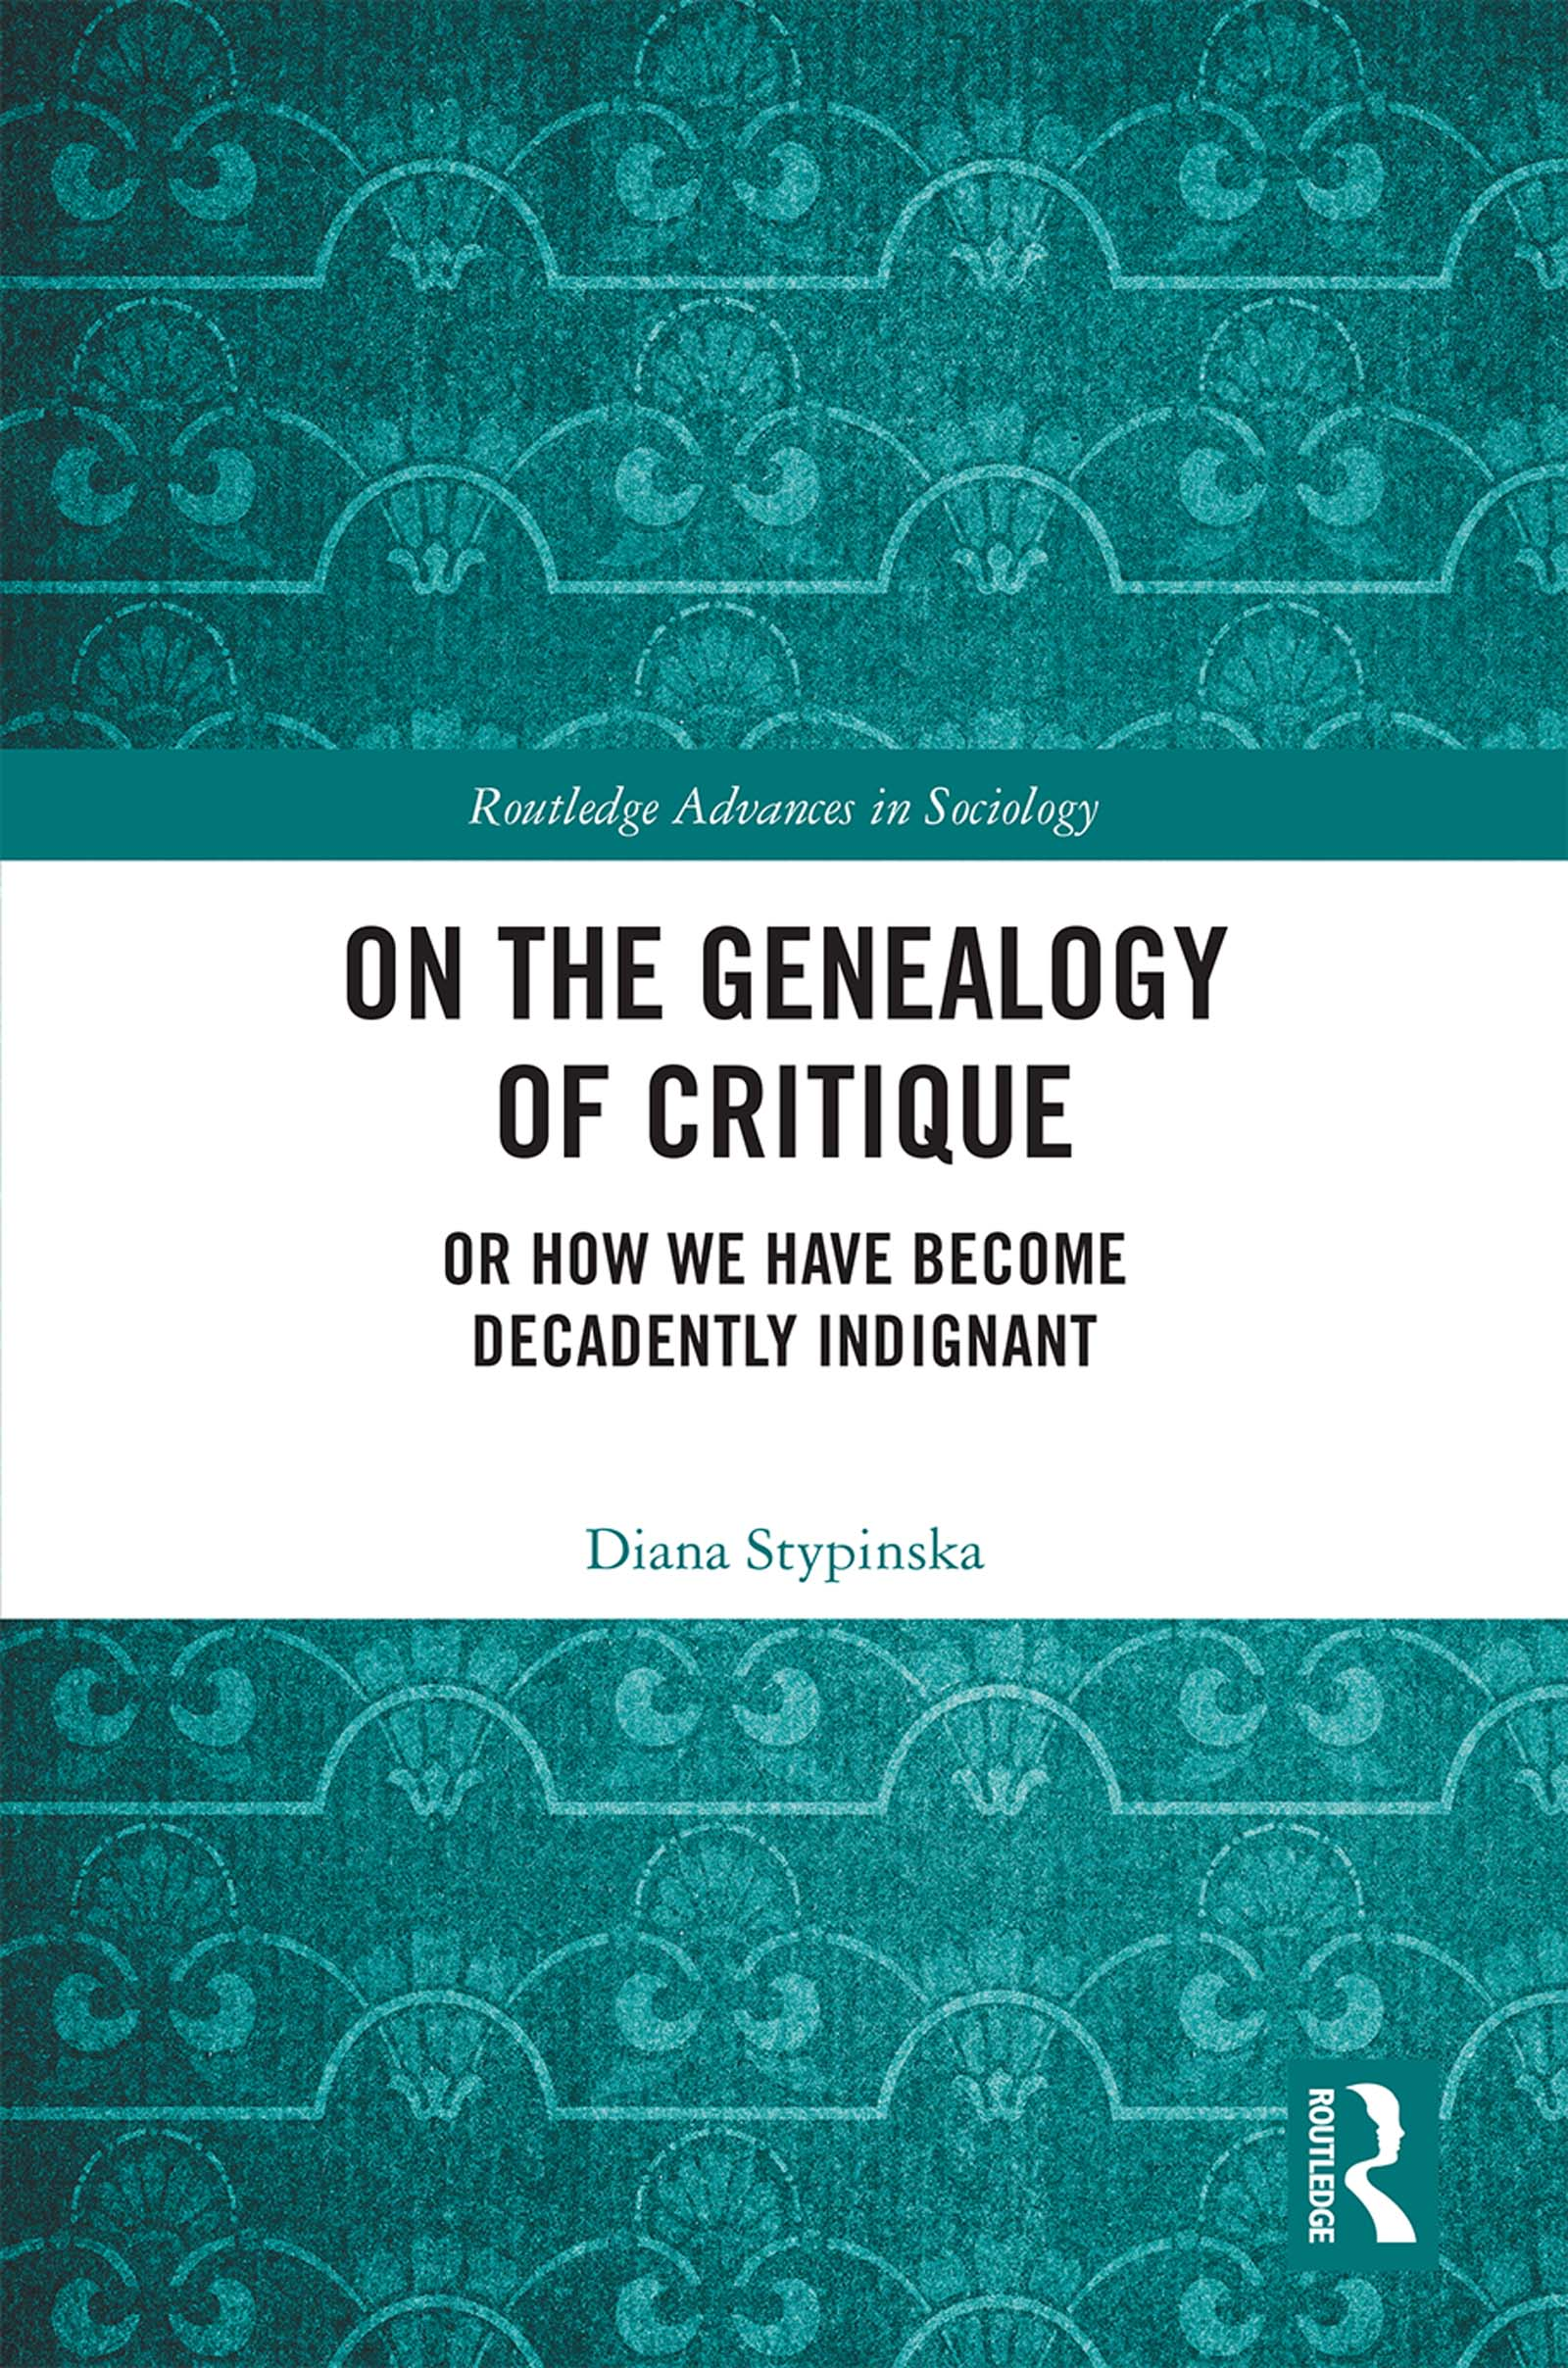 On the Genealogy of Critique: Or How We Have Become Decadently Indignant book cover